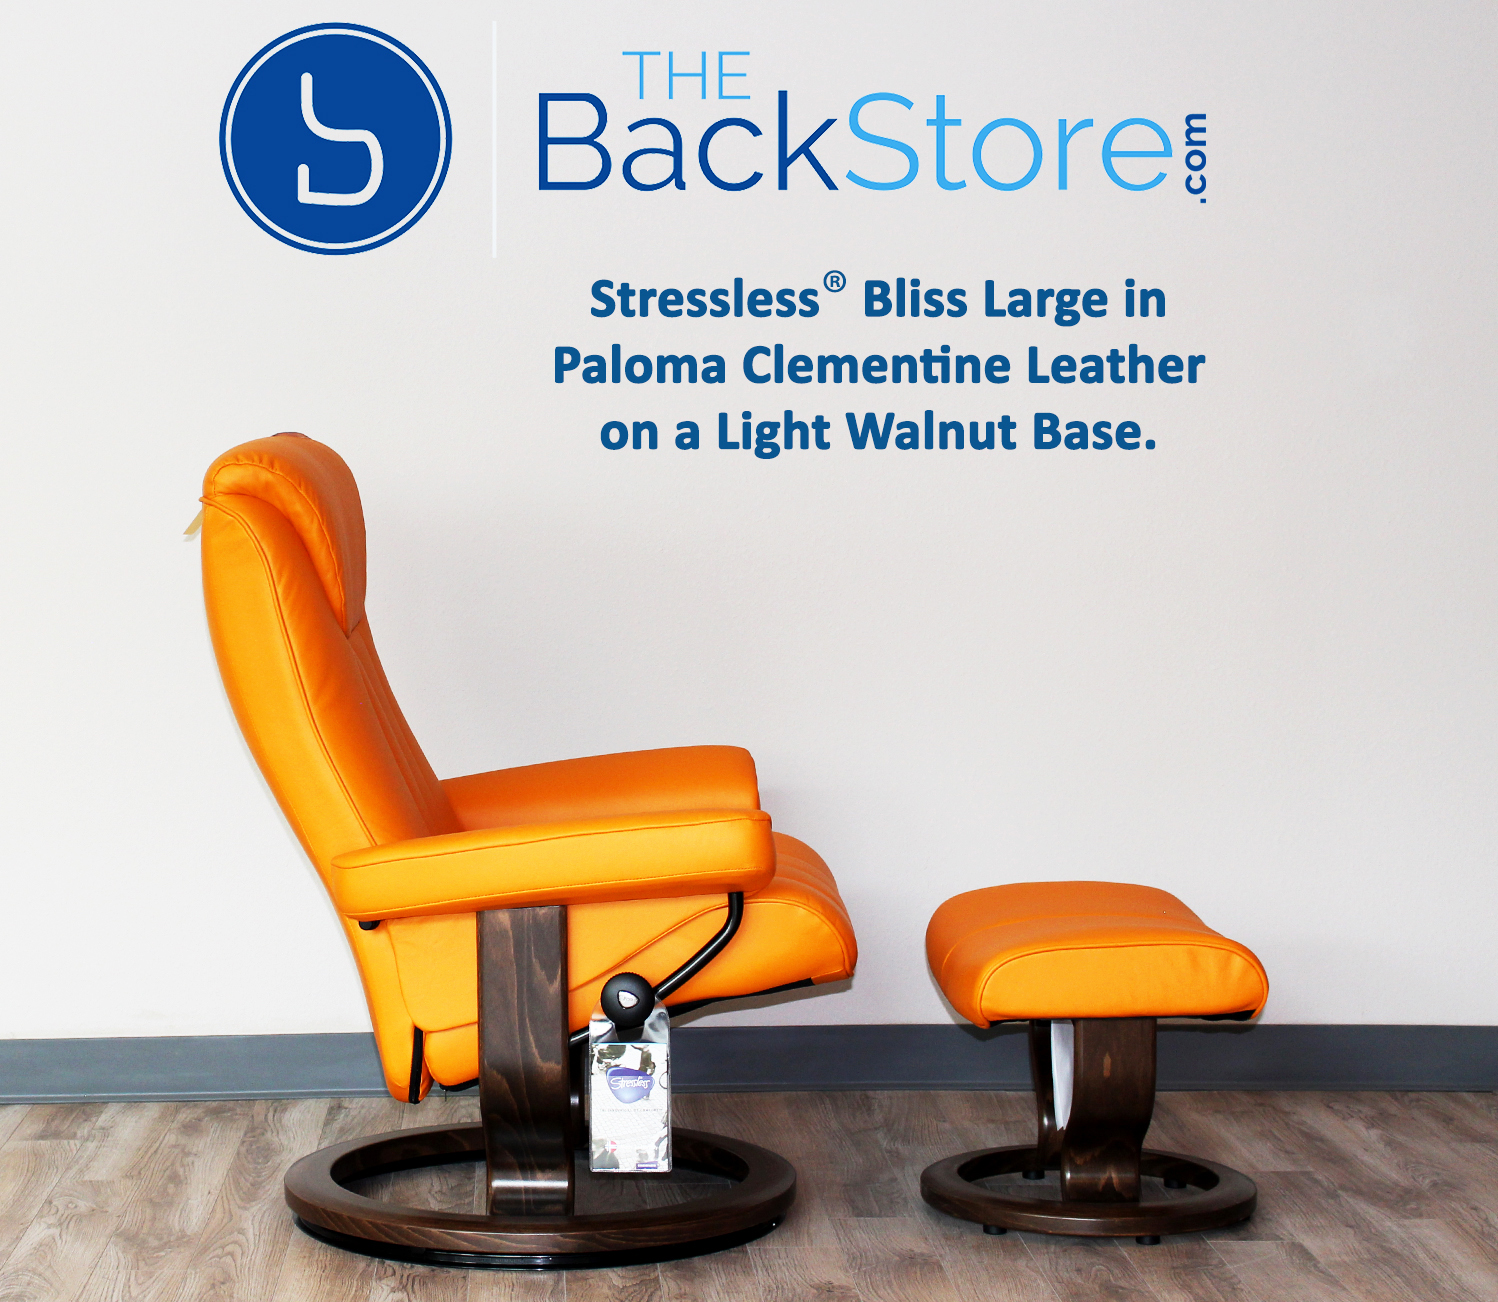 stressless recliner chair bliss paloma clementine leather and ottoman by ekornes - Stressless Chair